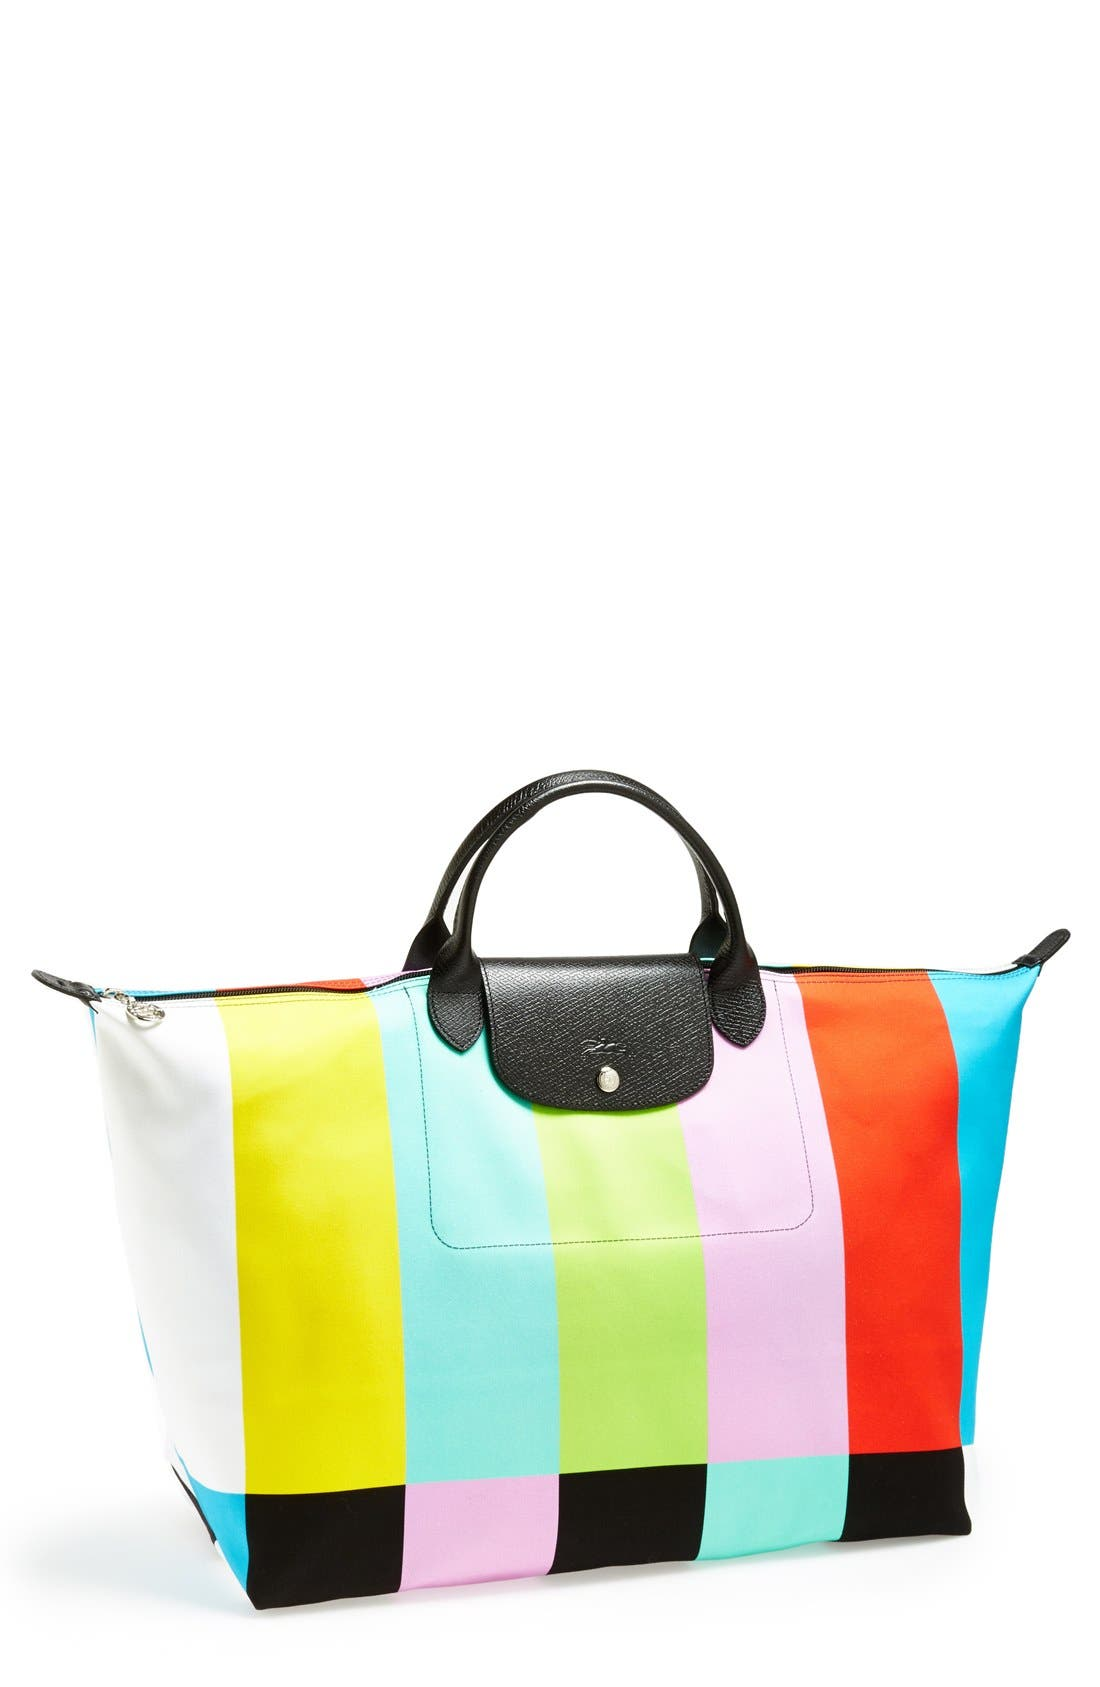 Alternate Image 1 Selected - Longchamp 'Jeremy Scott - Color Bar' Travel Bag